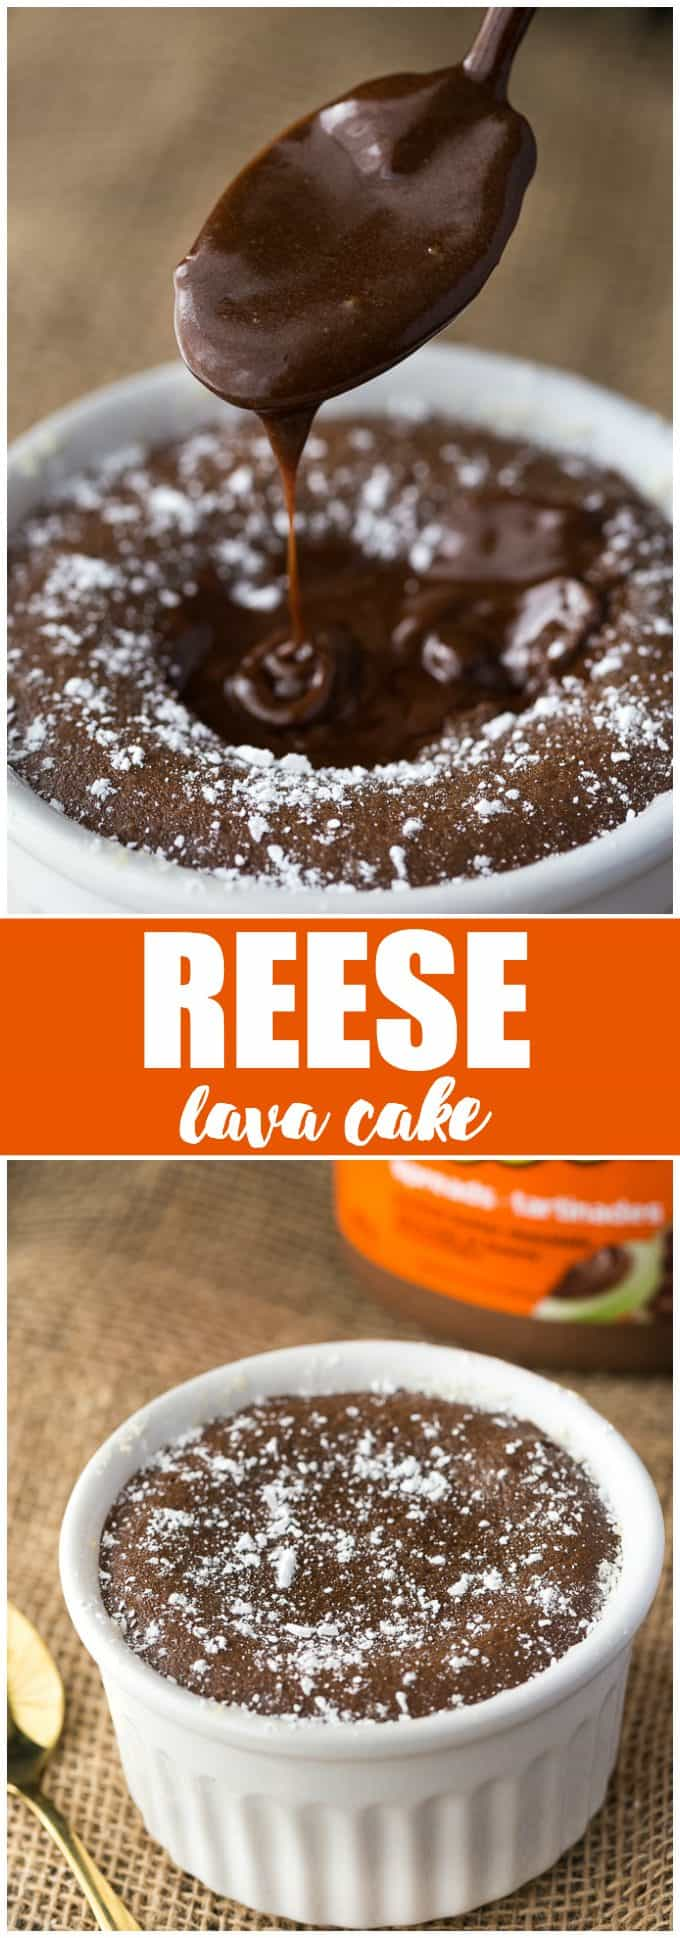 Reese Lava Cake - If you love sinfully rich chocolate with a hint of peanut butter, this recipe is for you!